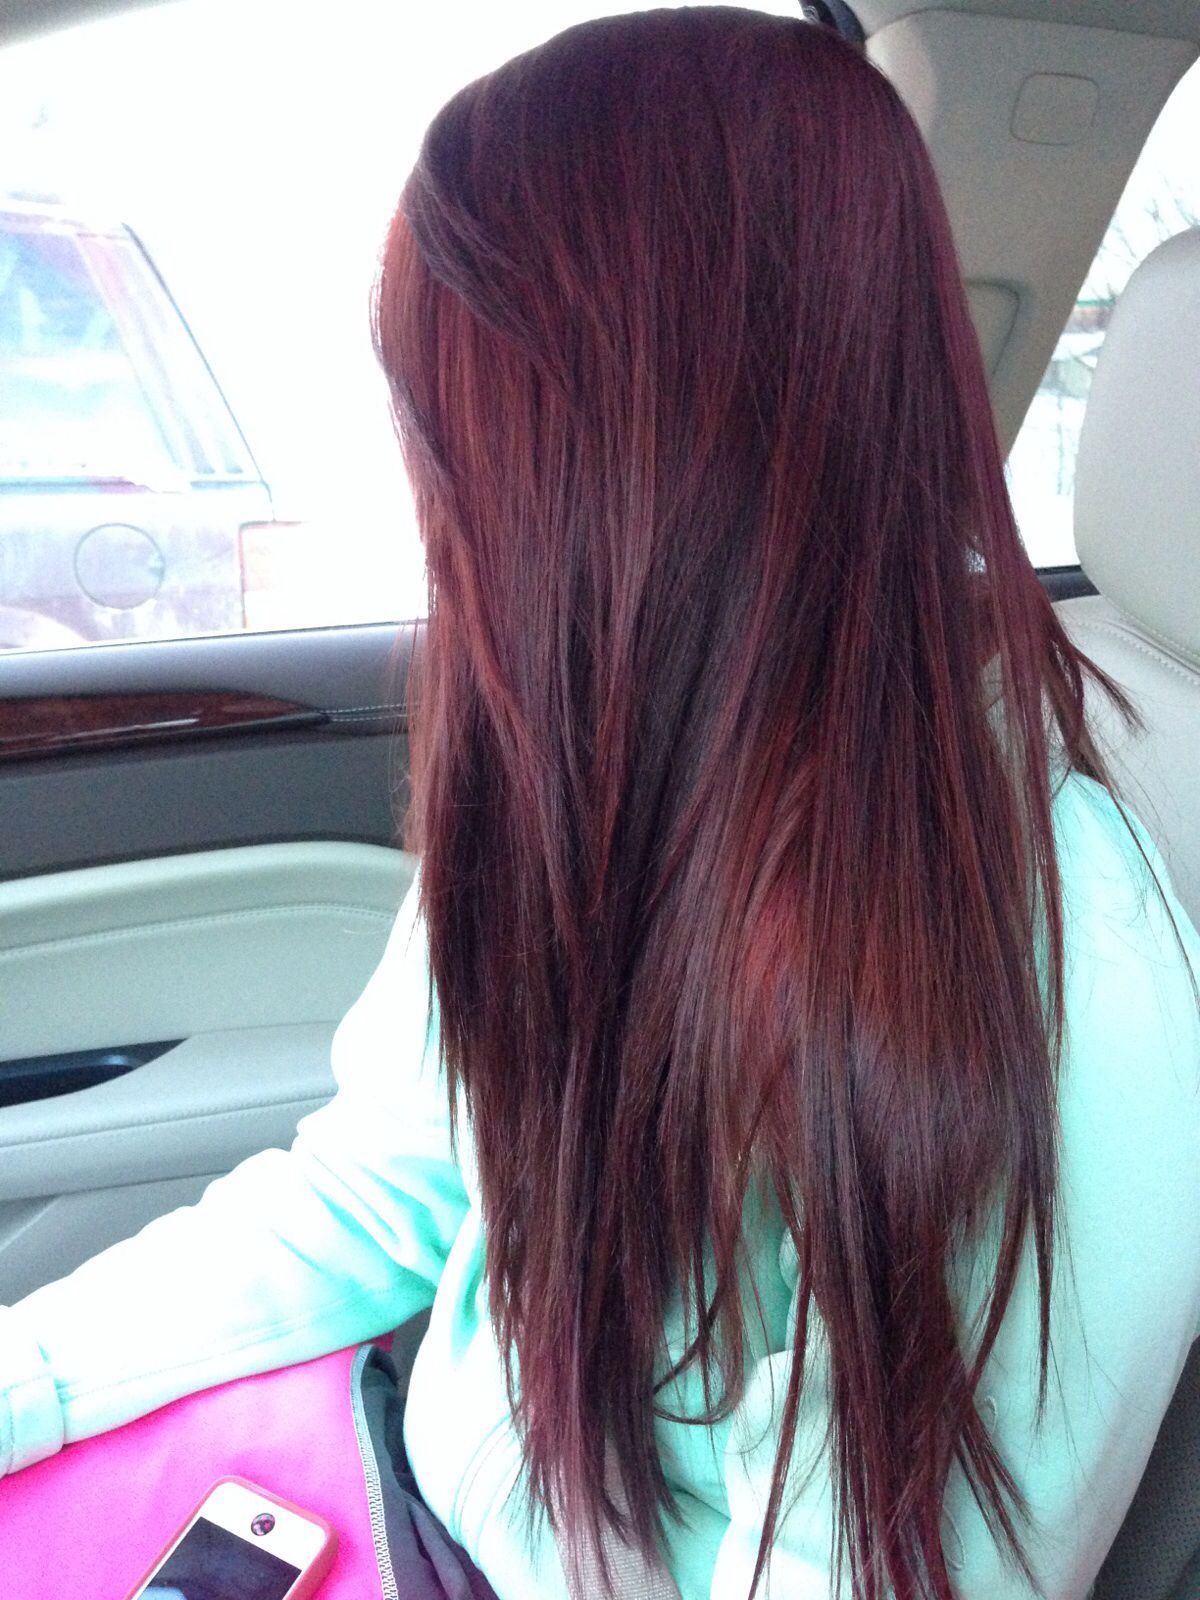 14 Wonderful Dark Colored Hairstyles | Coke, Dark brown and Hair ...